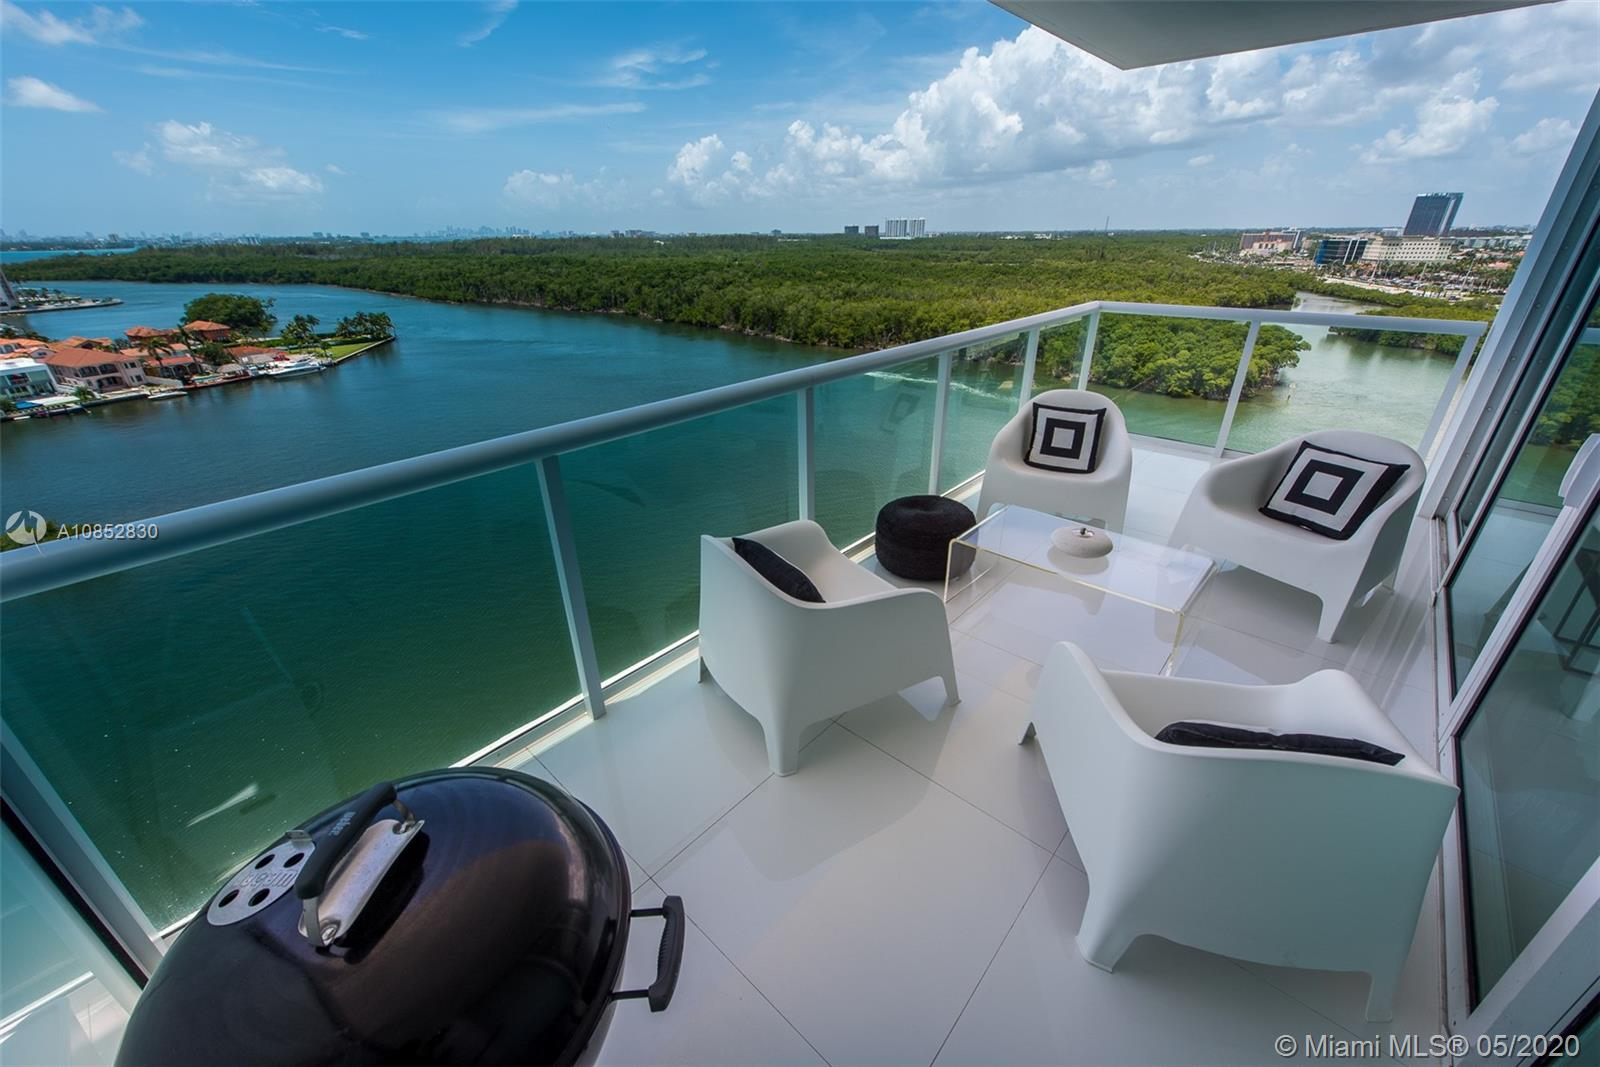 Huge and Beautiful CORNER UNIT !!! 3bed/3 bath. Amazing decorated!!! 400 Sunny Isles Building Tower West. Enjoy beautiful views of the Intercostal and the Ocean from your balcony, top of line appliances, huge closets. Luxury building, swimming pool, sauna, spa, gym, bar, marina and more